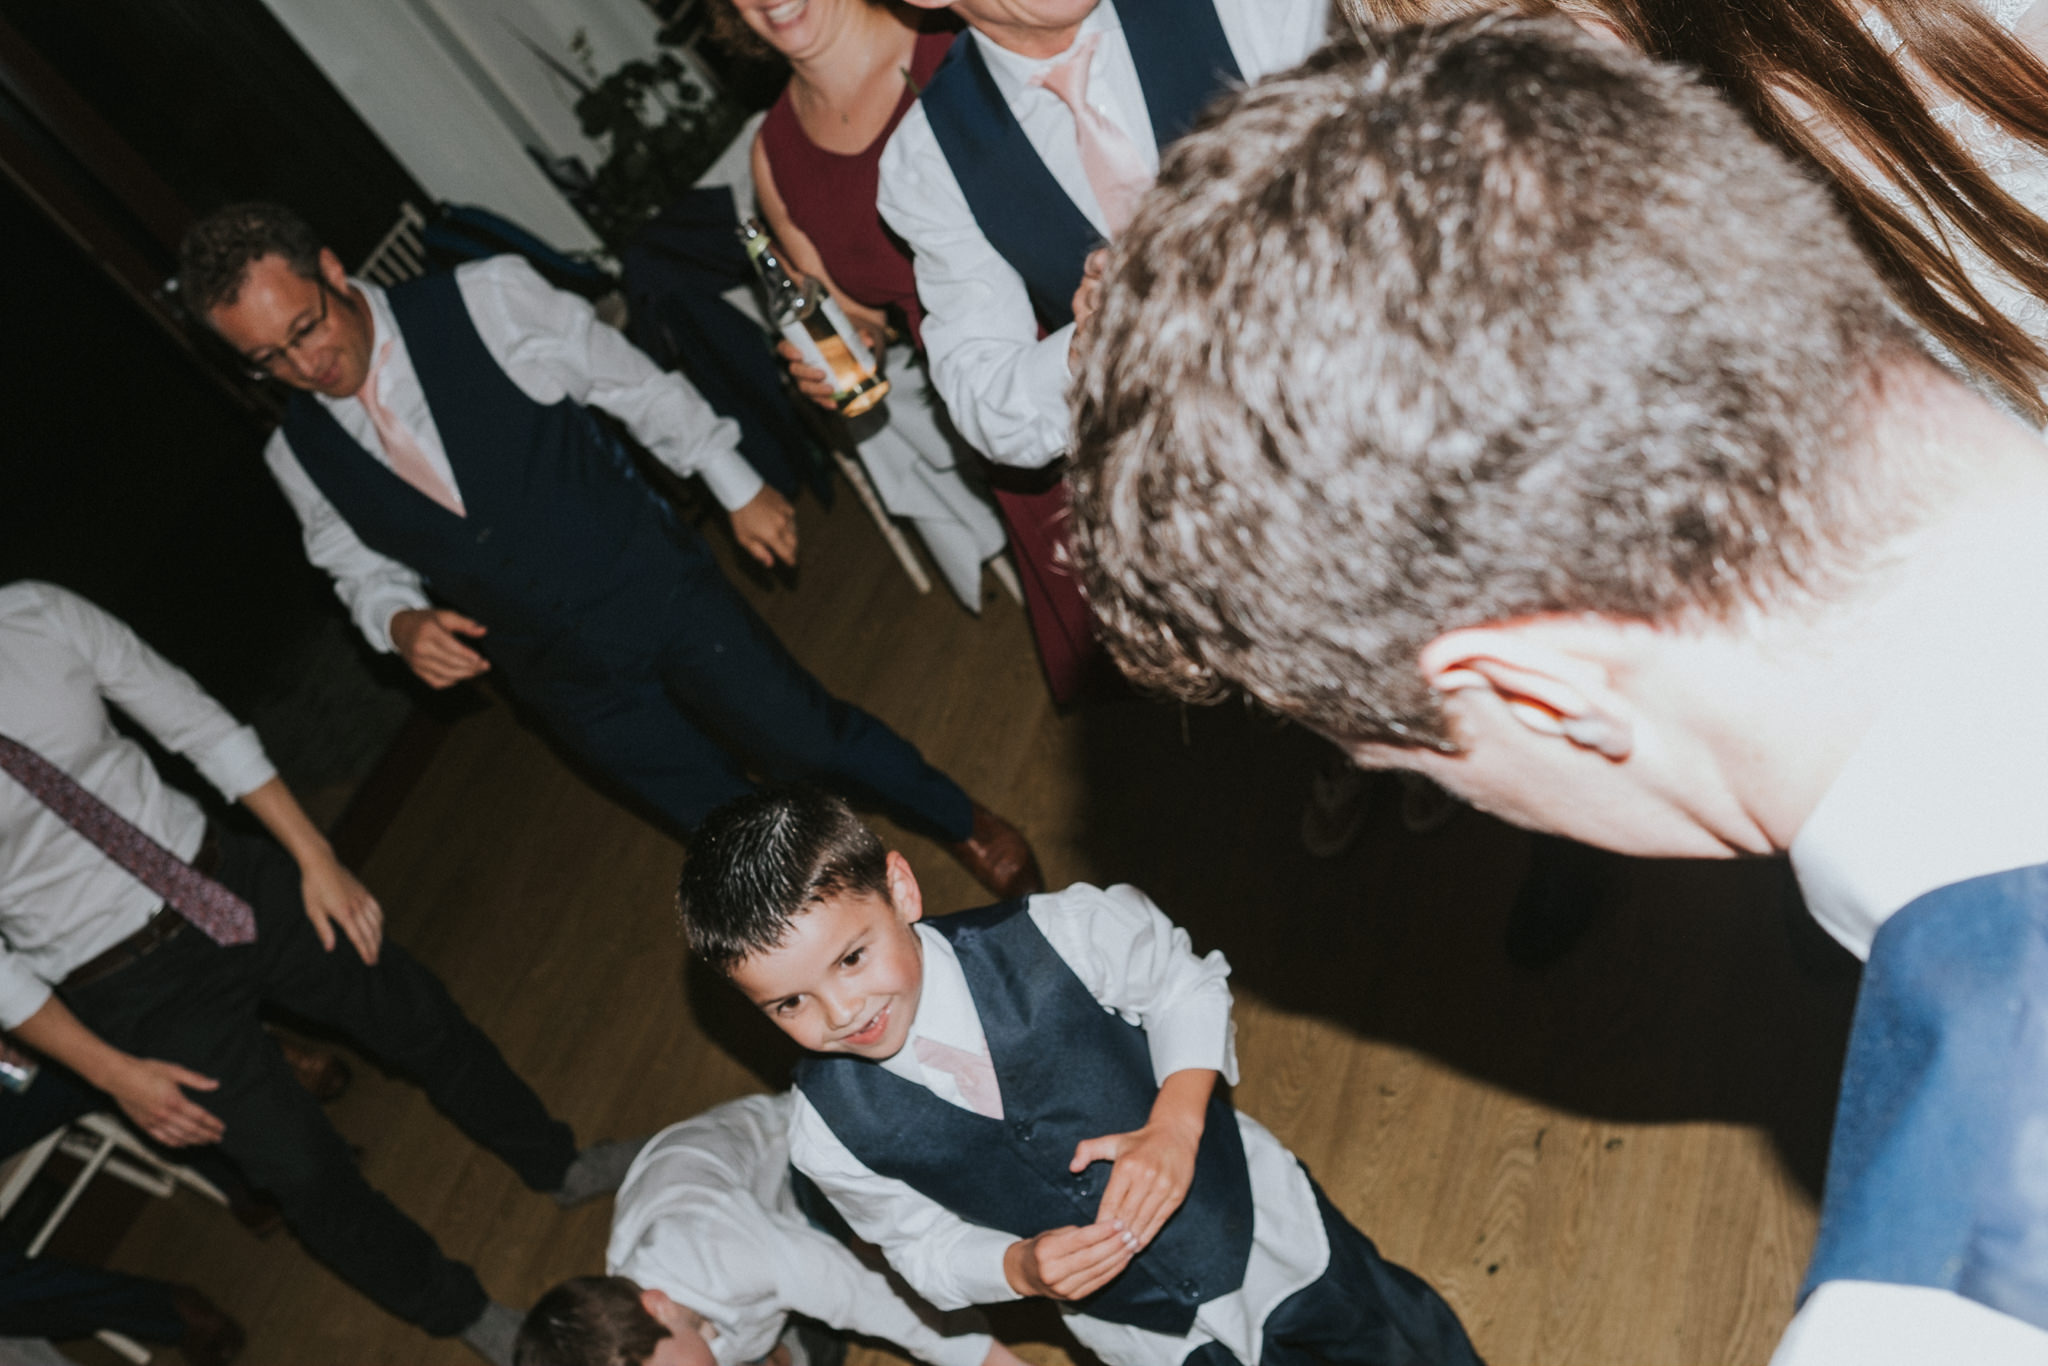 berkshire_wedding_photographer_emma_simon (309 of 327).jpg